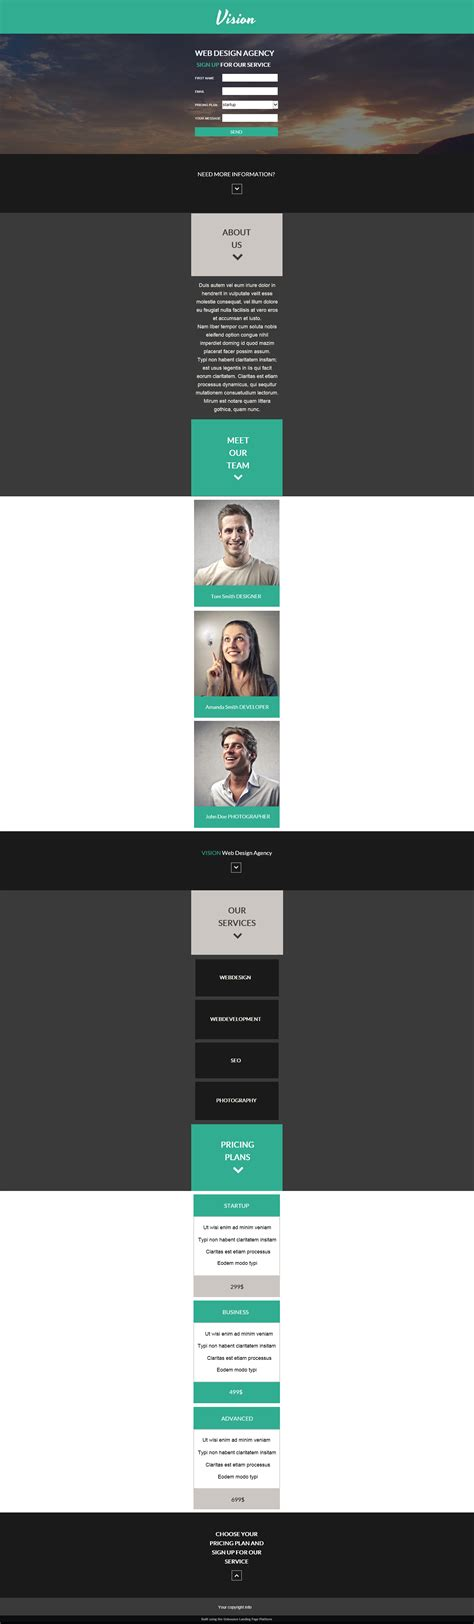 themeforest unbounce vision agency unbounce landing page by webdesignn